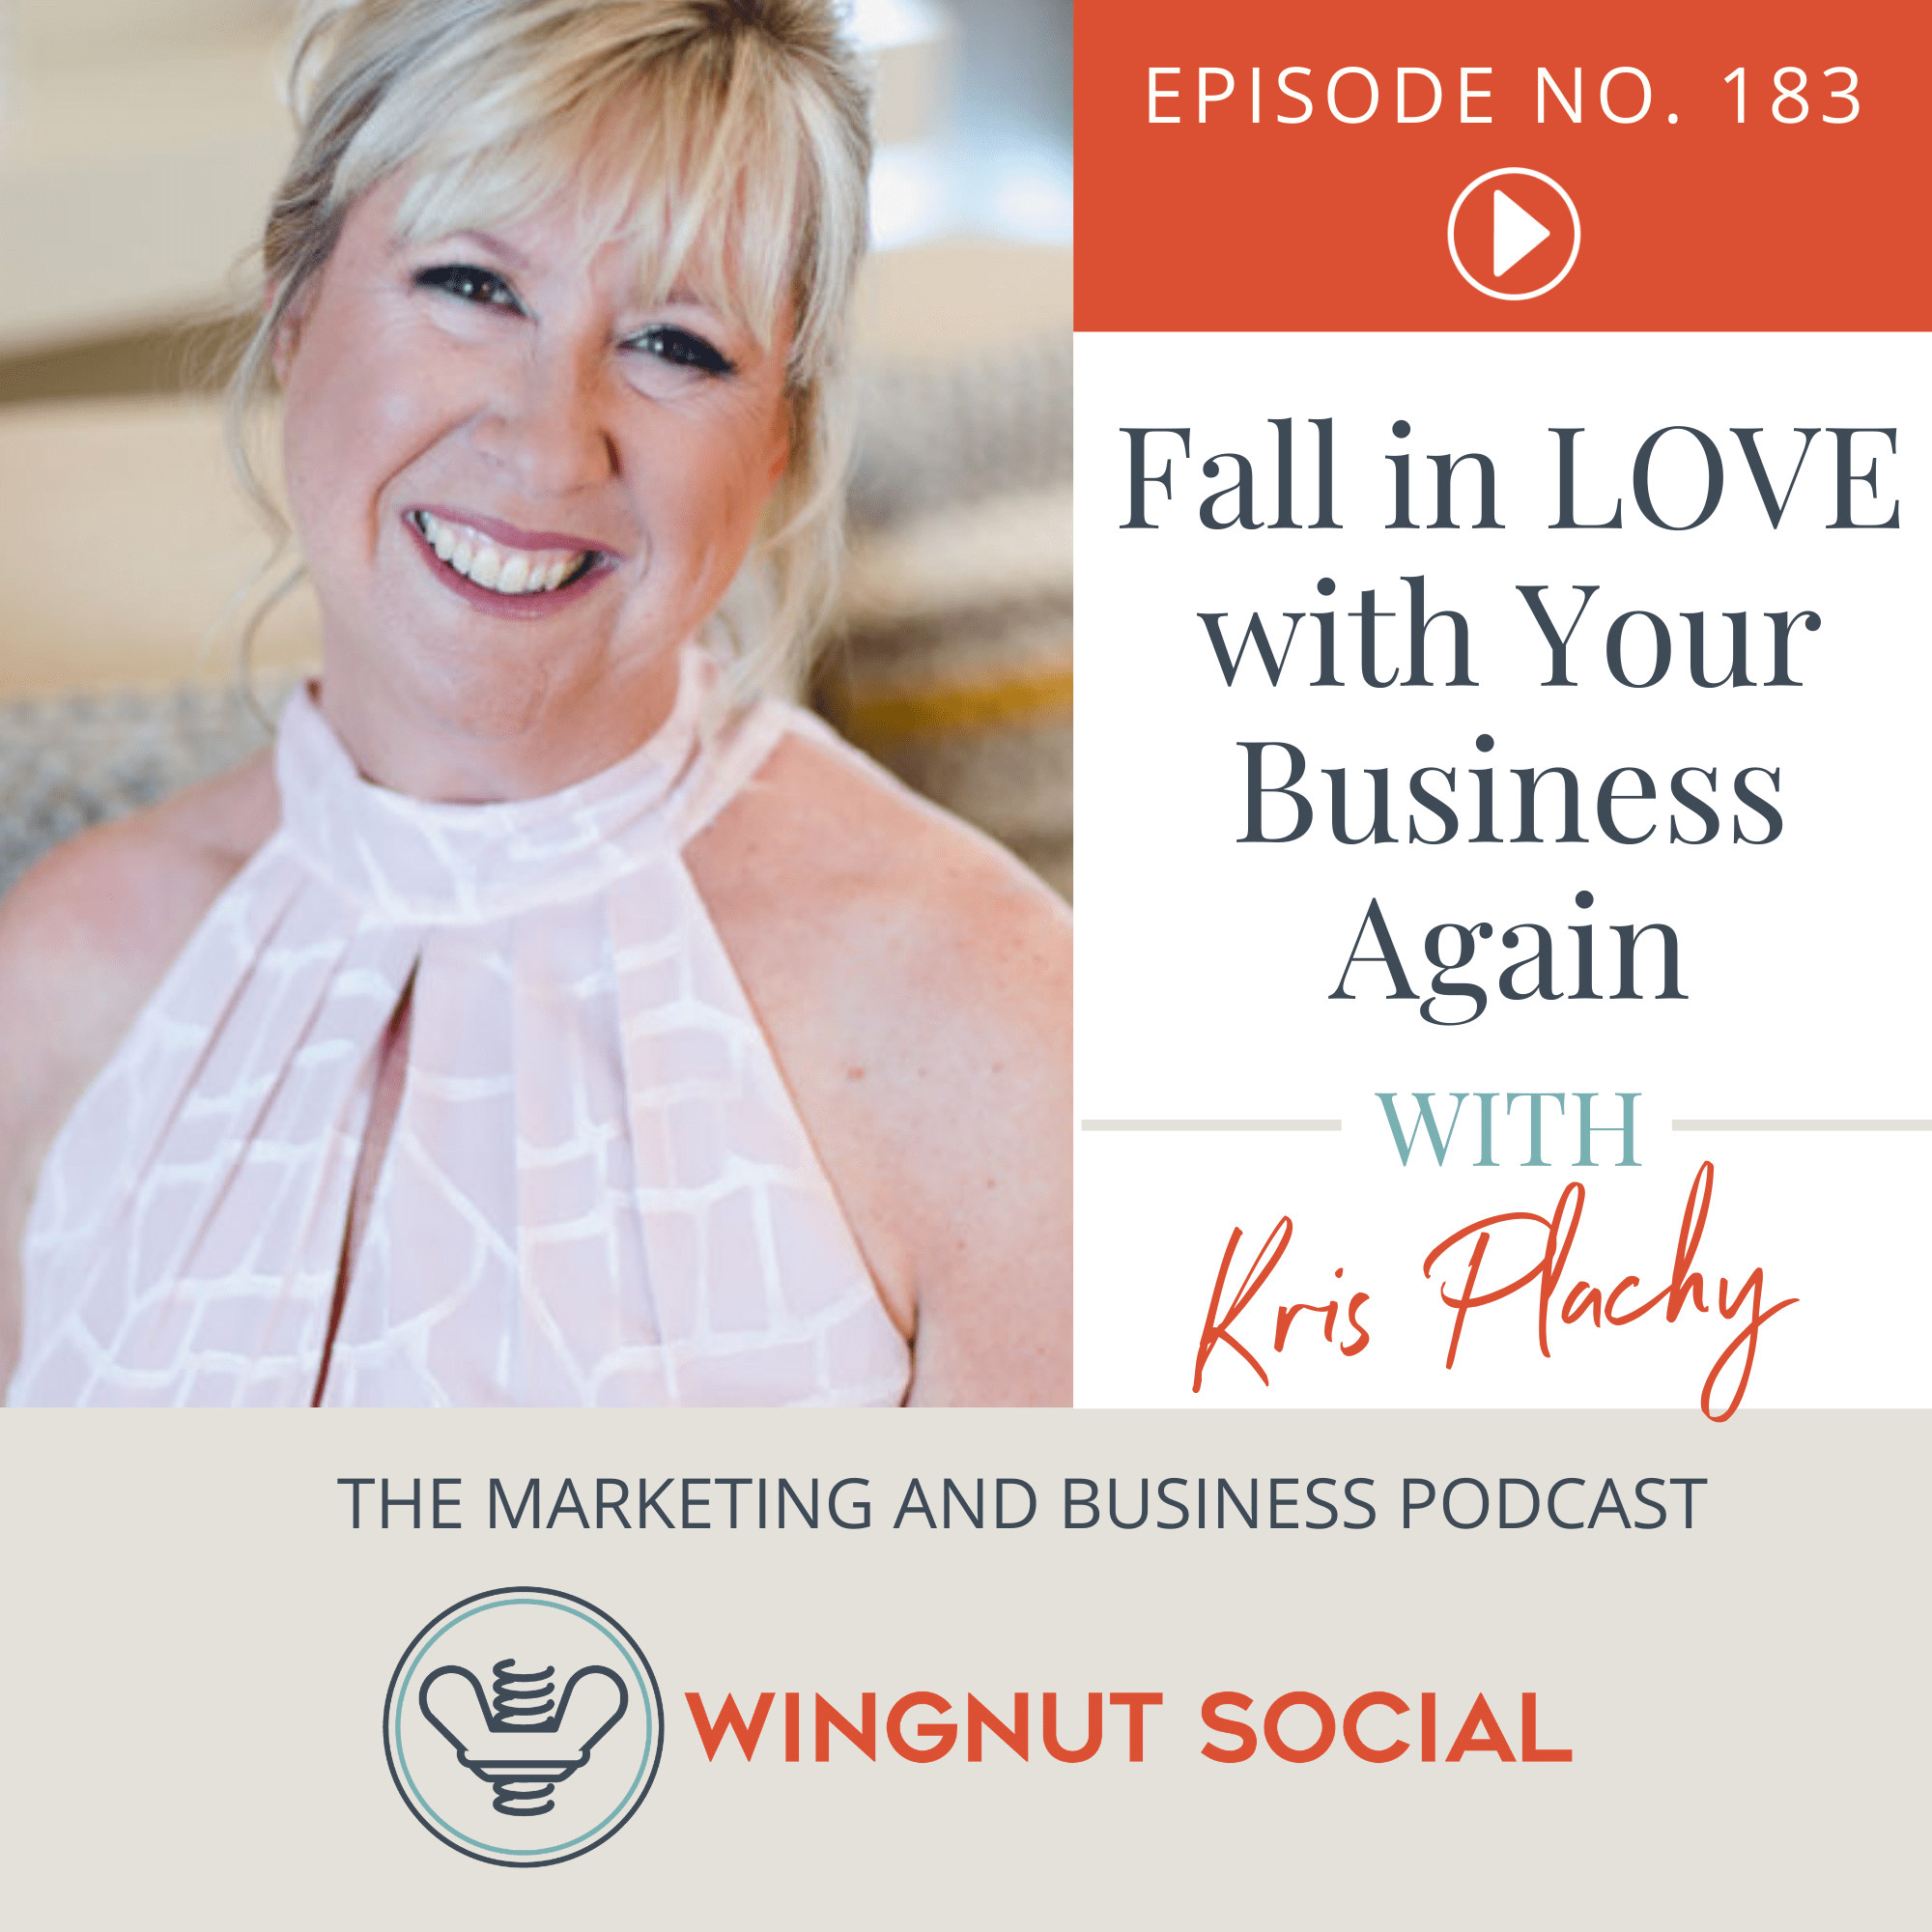 Fall in LOVE with Your Business Again with Kris Plachy - Episode 183